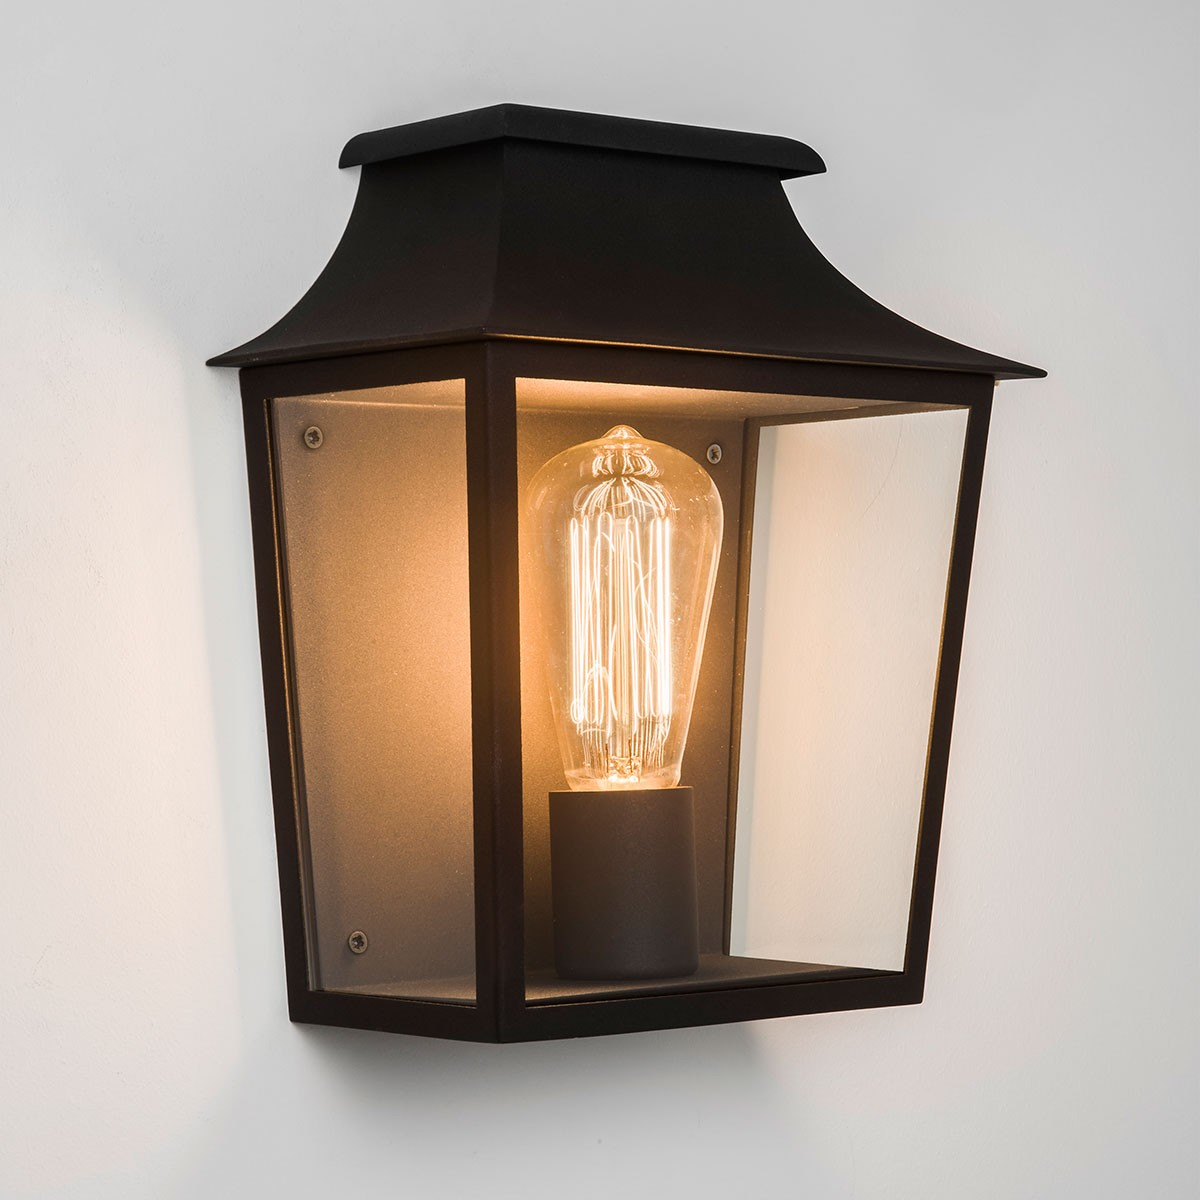 Astro Richmond Black Outdoor Wall Light at UK Electrical Supplies.